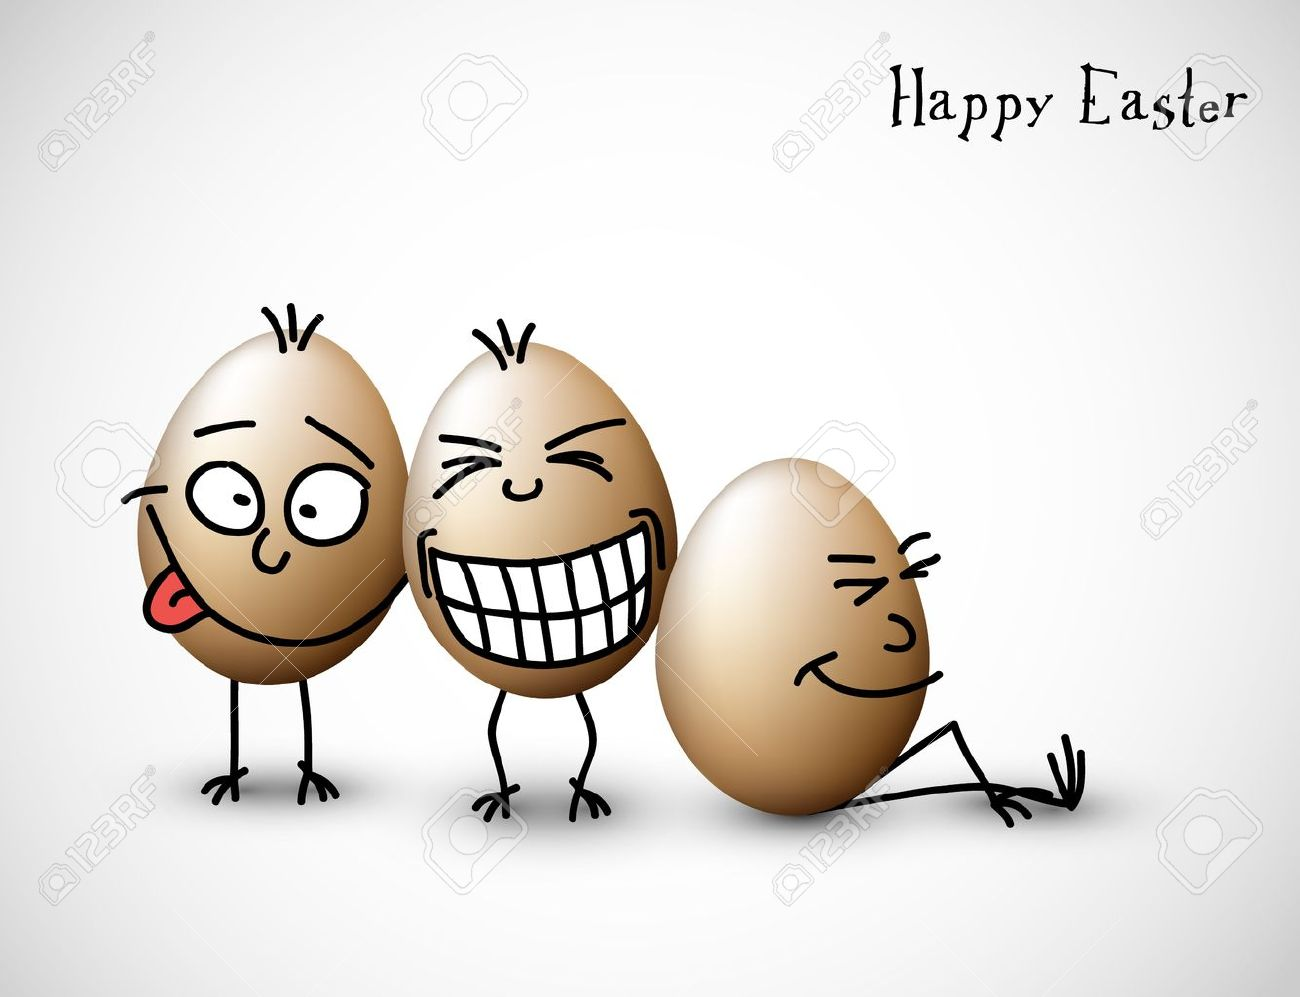 Funny easter eggs happy easter card royalty free cliparts vectors funny easter eggs happy easter card stock vector 12081354 kristyandbryce Choice Image